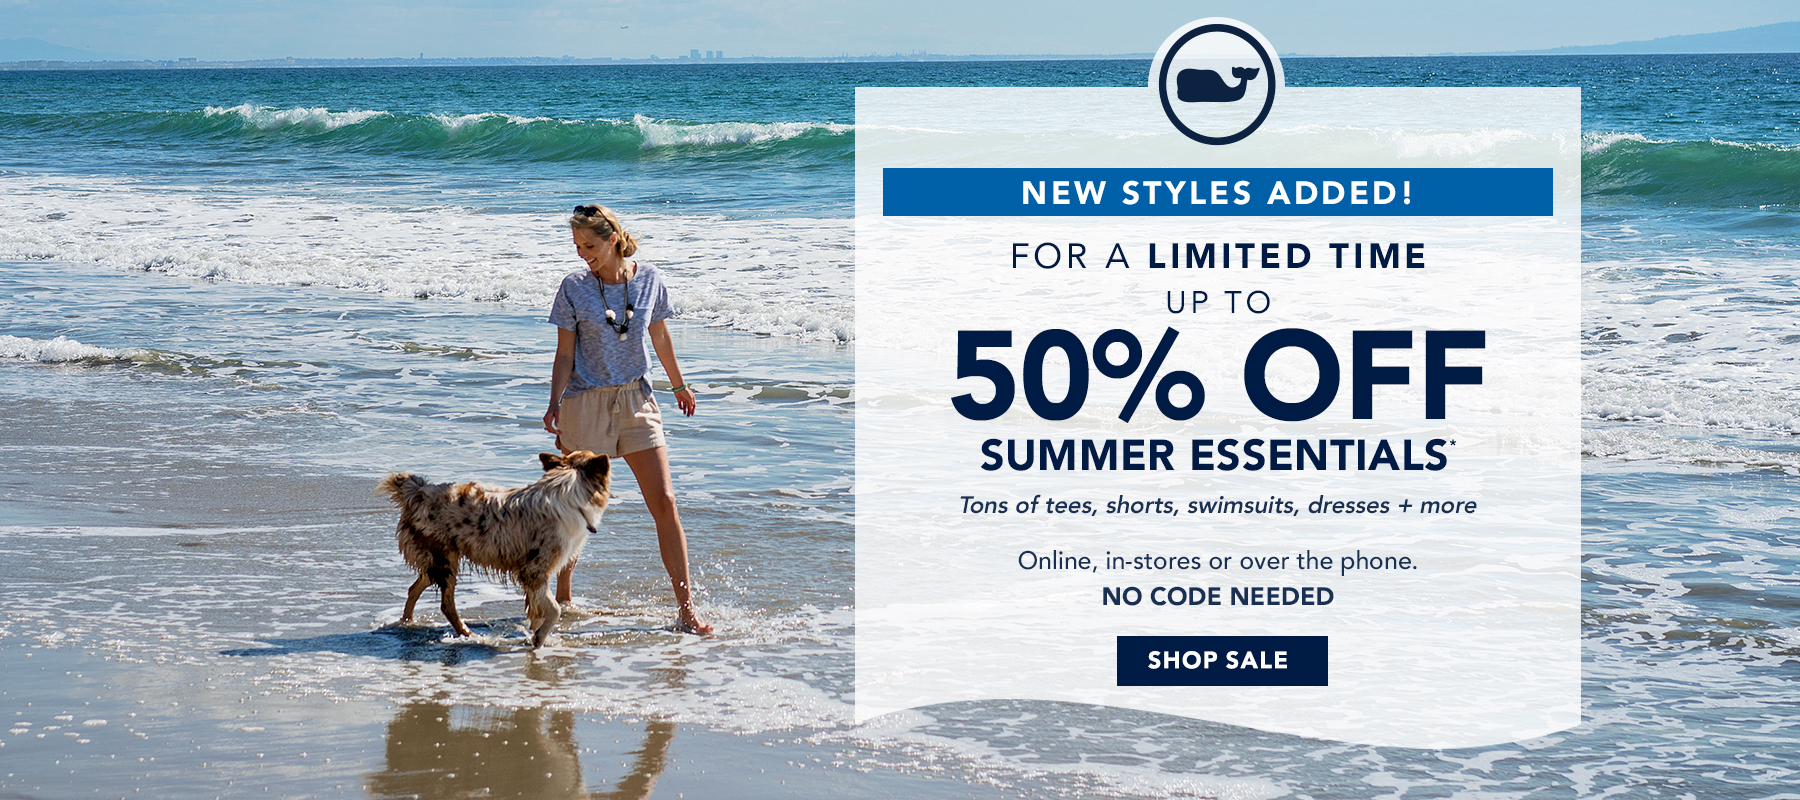 New Styles Added! For a limited time up to 50% off Summer essentials. Shop Sale.